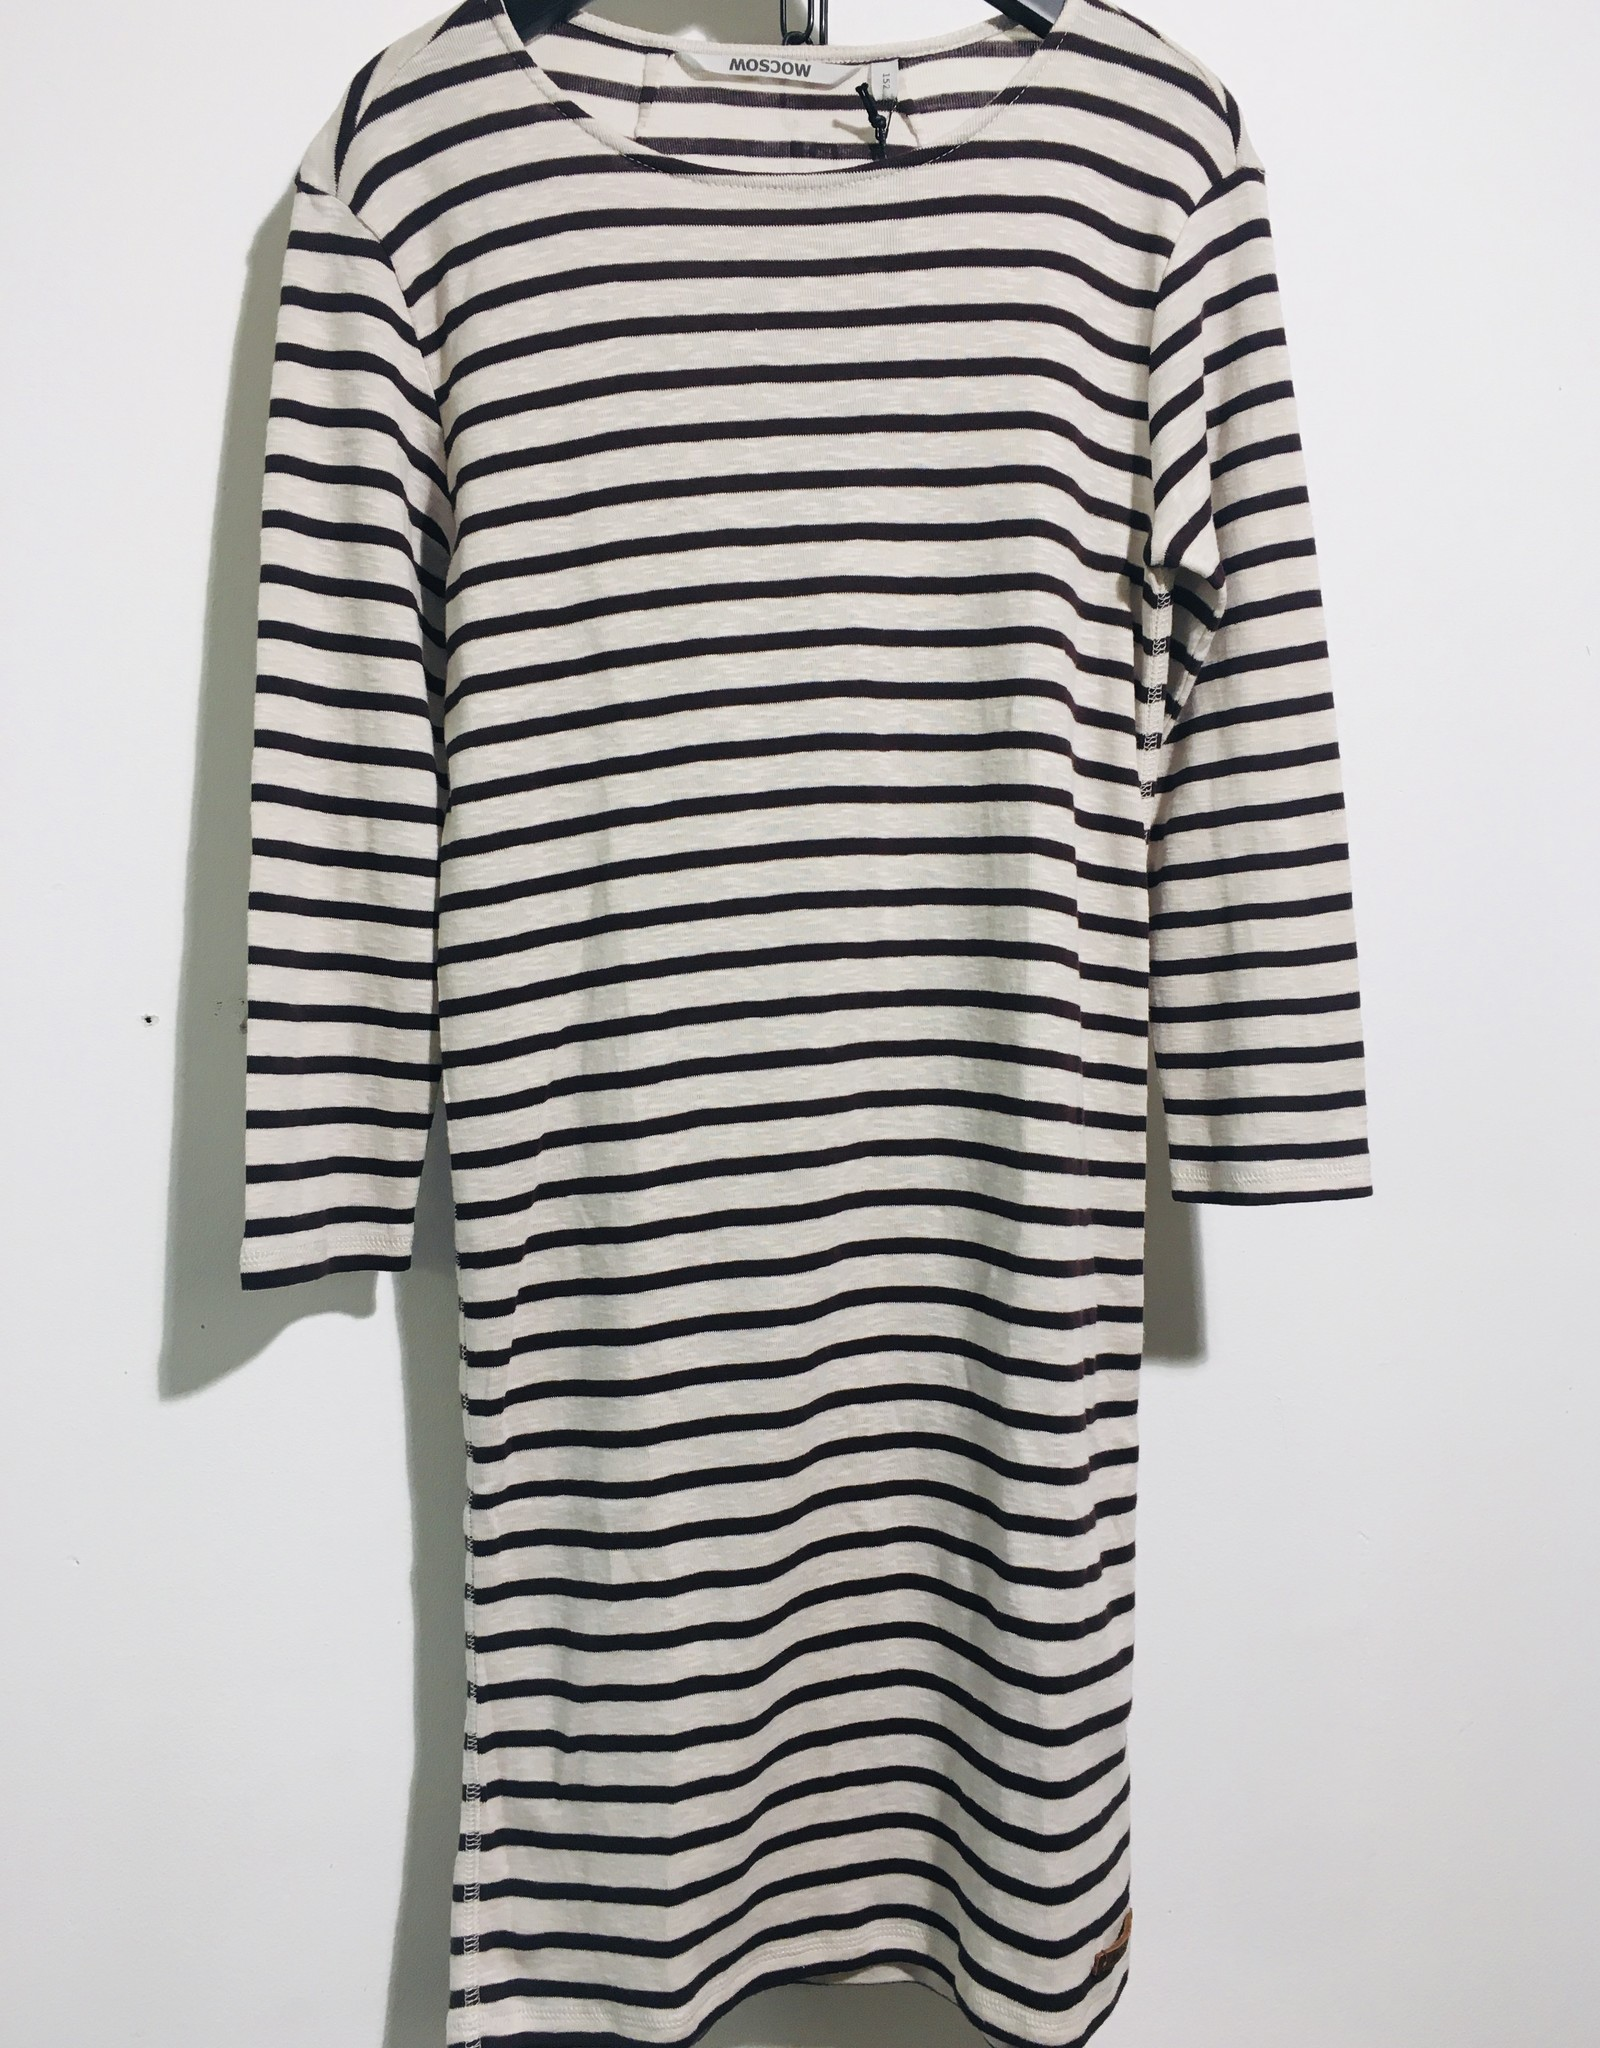 Moscow Dress Striped Cotton Jersey